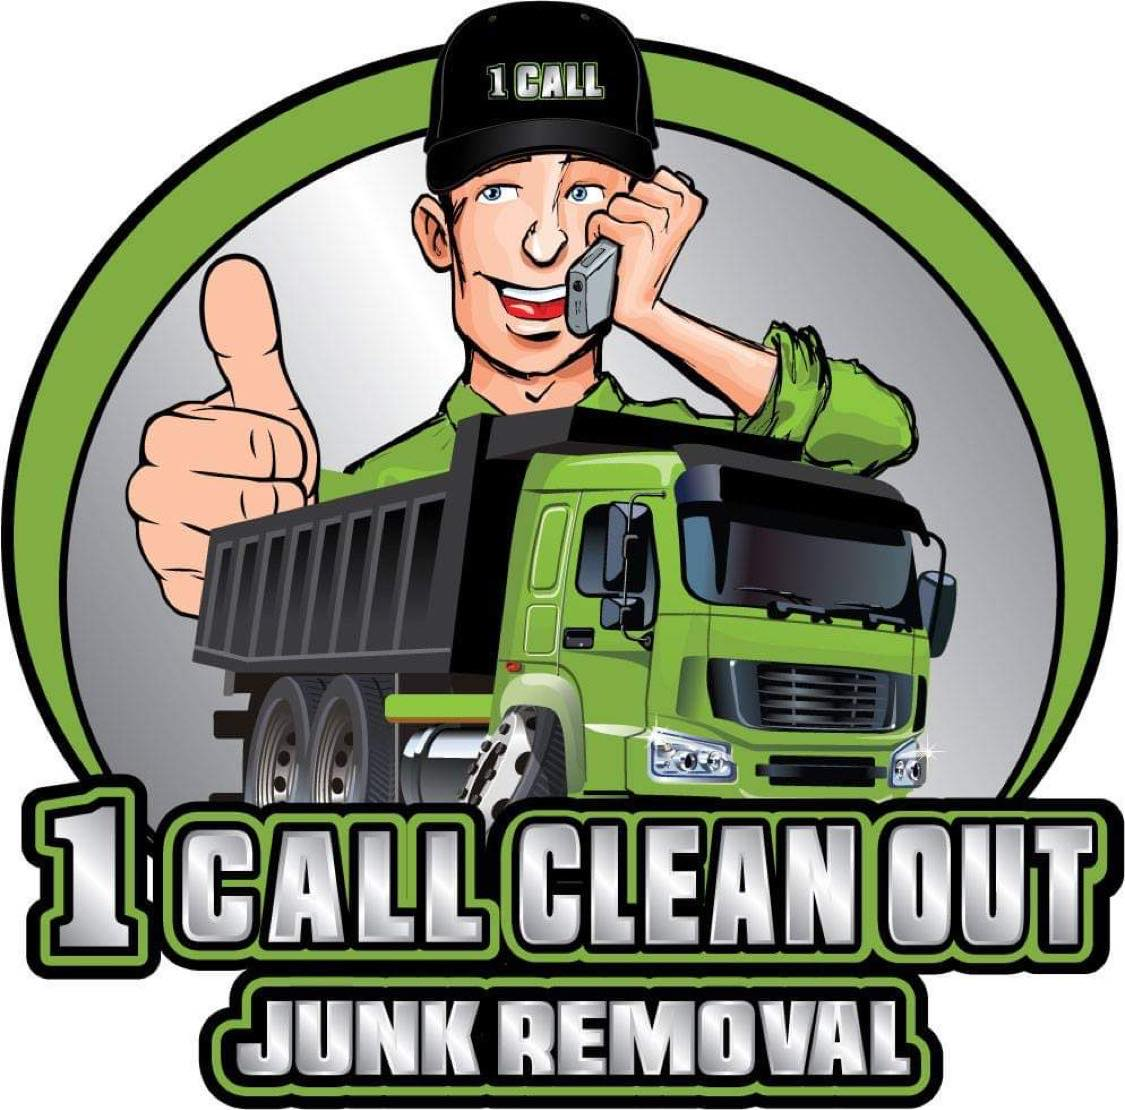 1 Call Clean Out